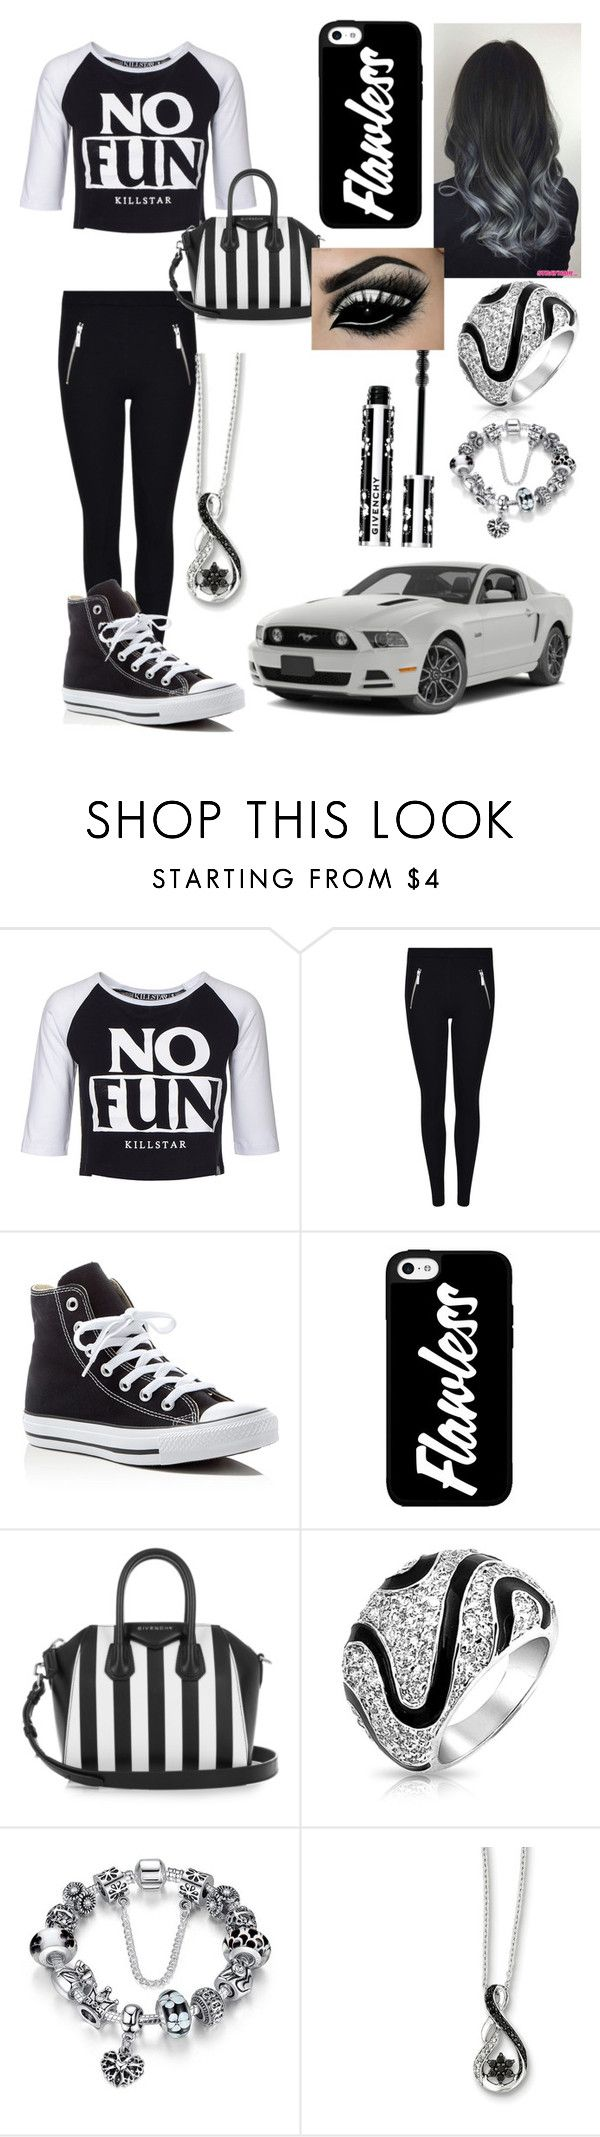 """""""Girl from the hood be like"""" by tray-tray2 ❤ liked on Polyvore featuring Killstar, MICHAEL Michael Kors, Converse, Givenchy and Bling Jewelry"""